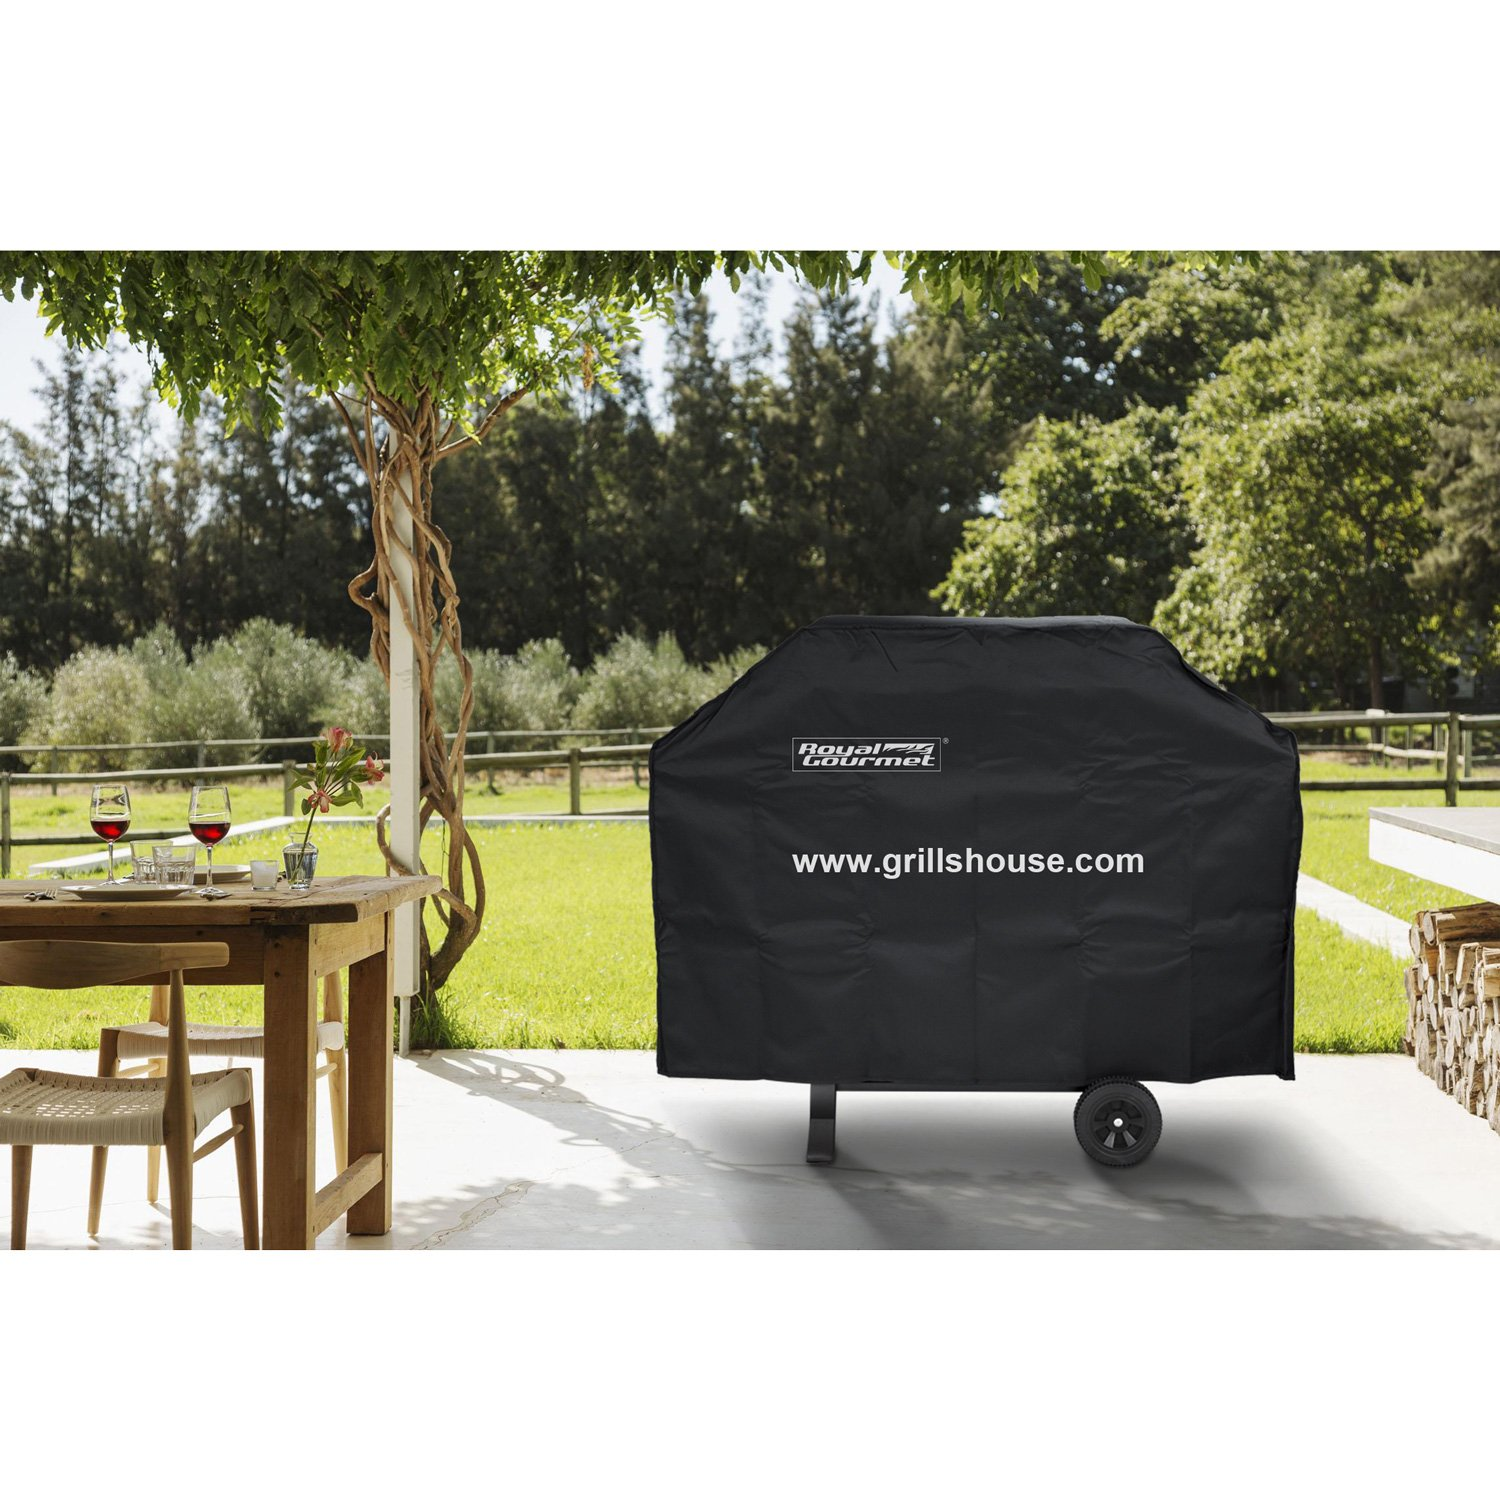 Royal Gourmet Bbq Grill Cover With Heavy Duty Waterproof Polyester